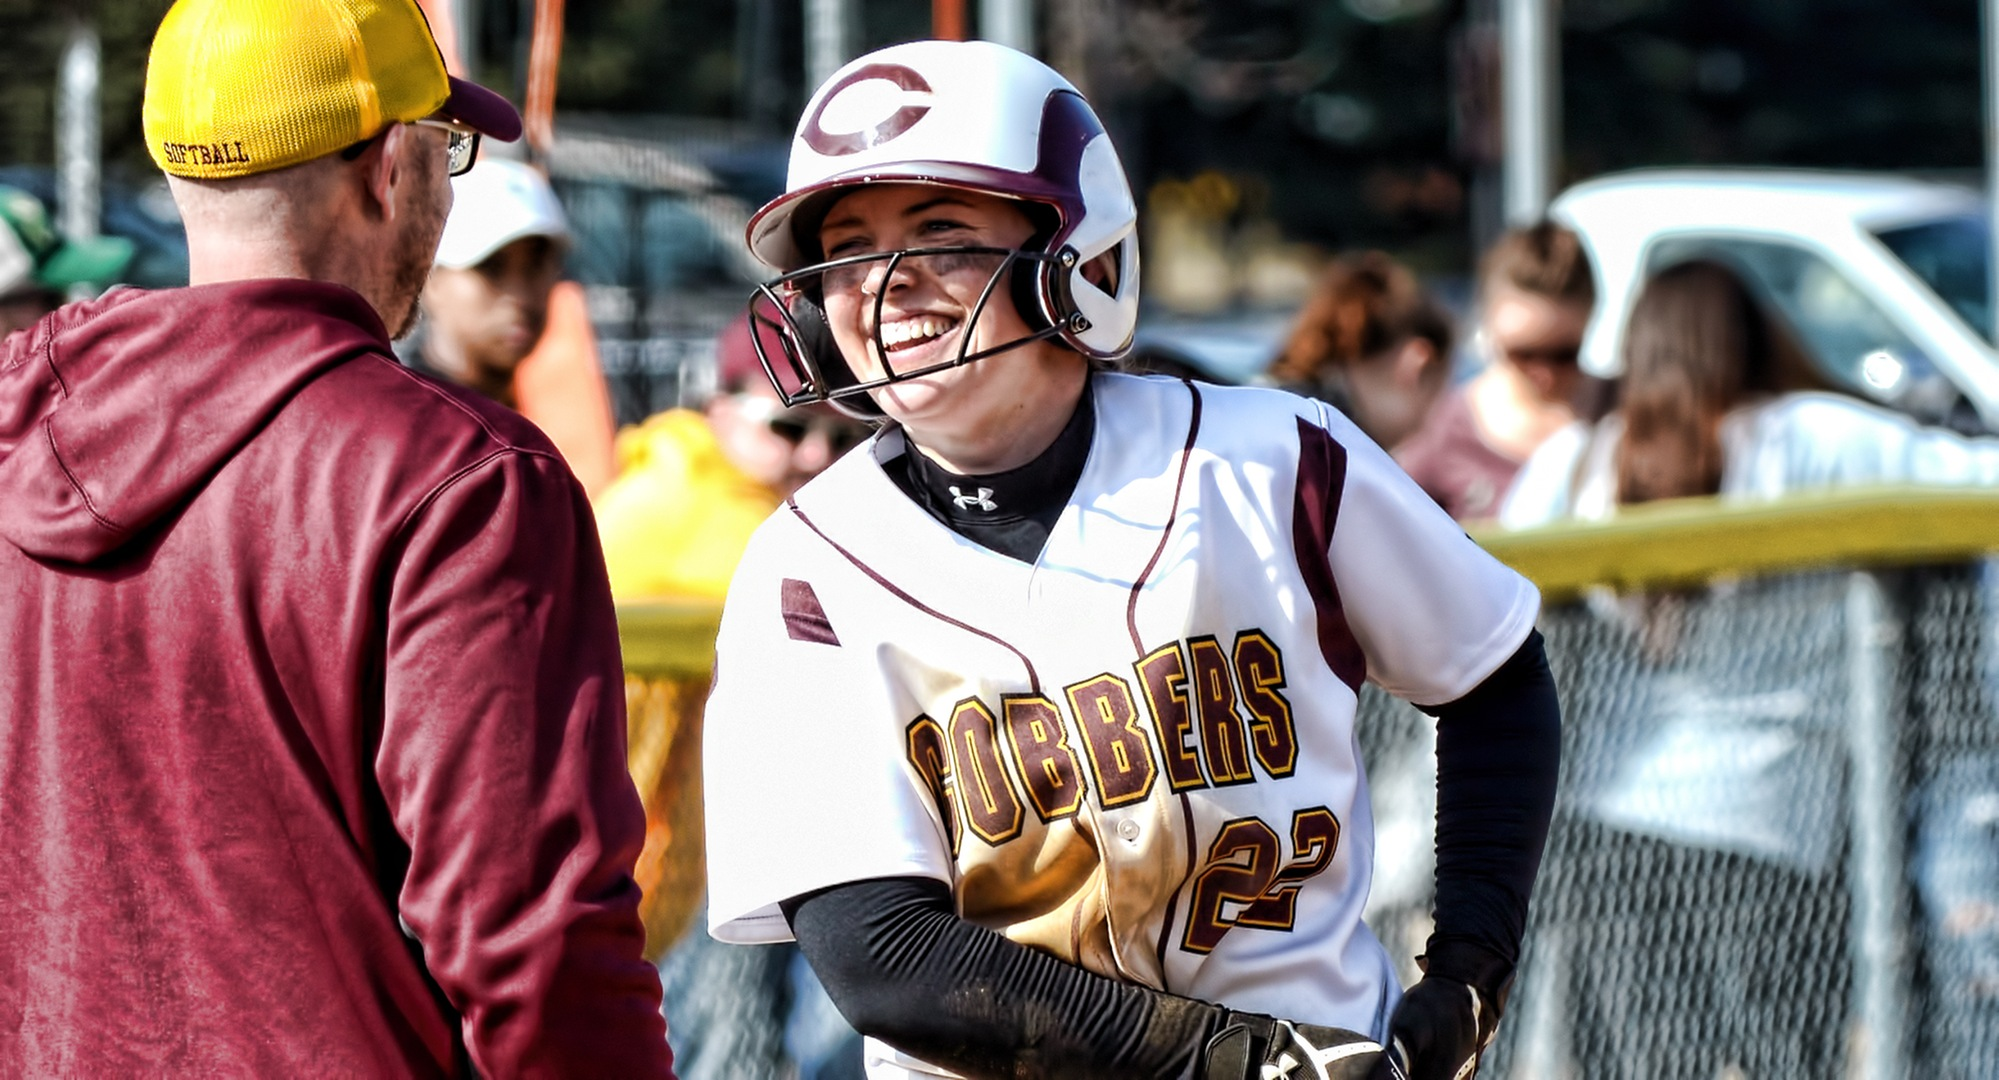 Elizabeth Asp is all smiles in Florida as she went 7-for-7 on Tuesday to help the Cobbers post wins over Houghton and Johnson State.